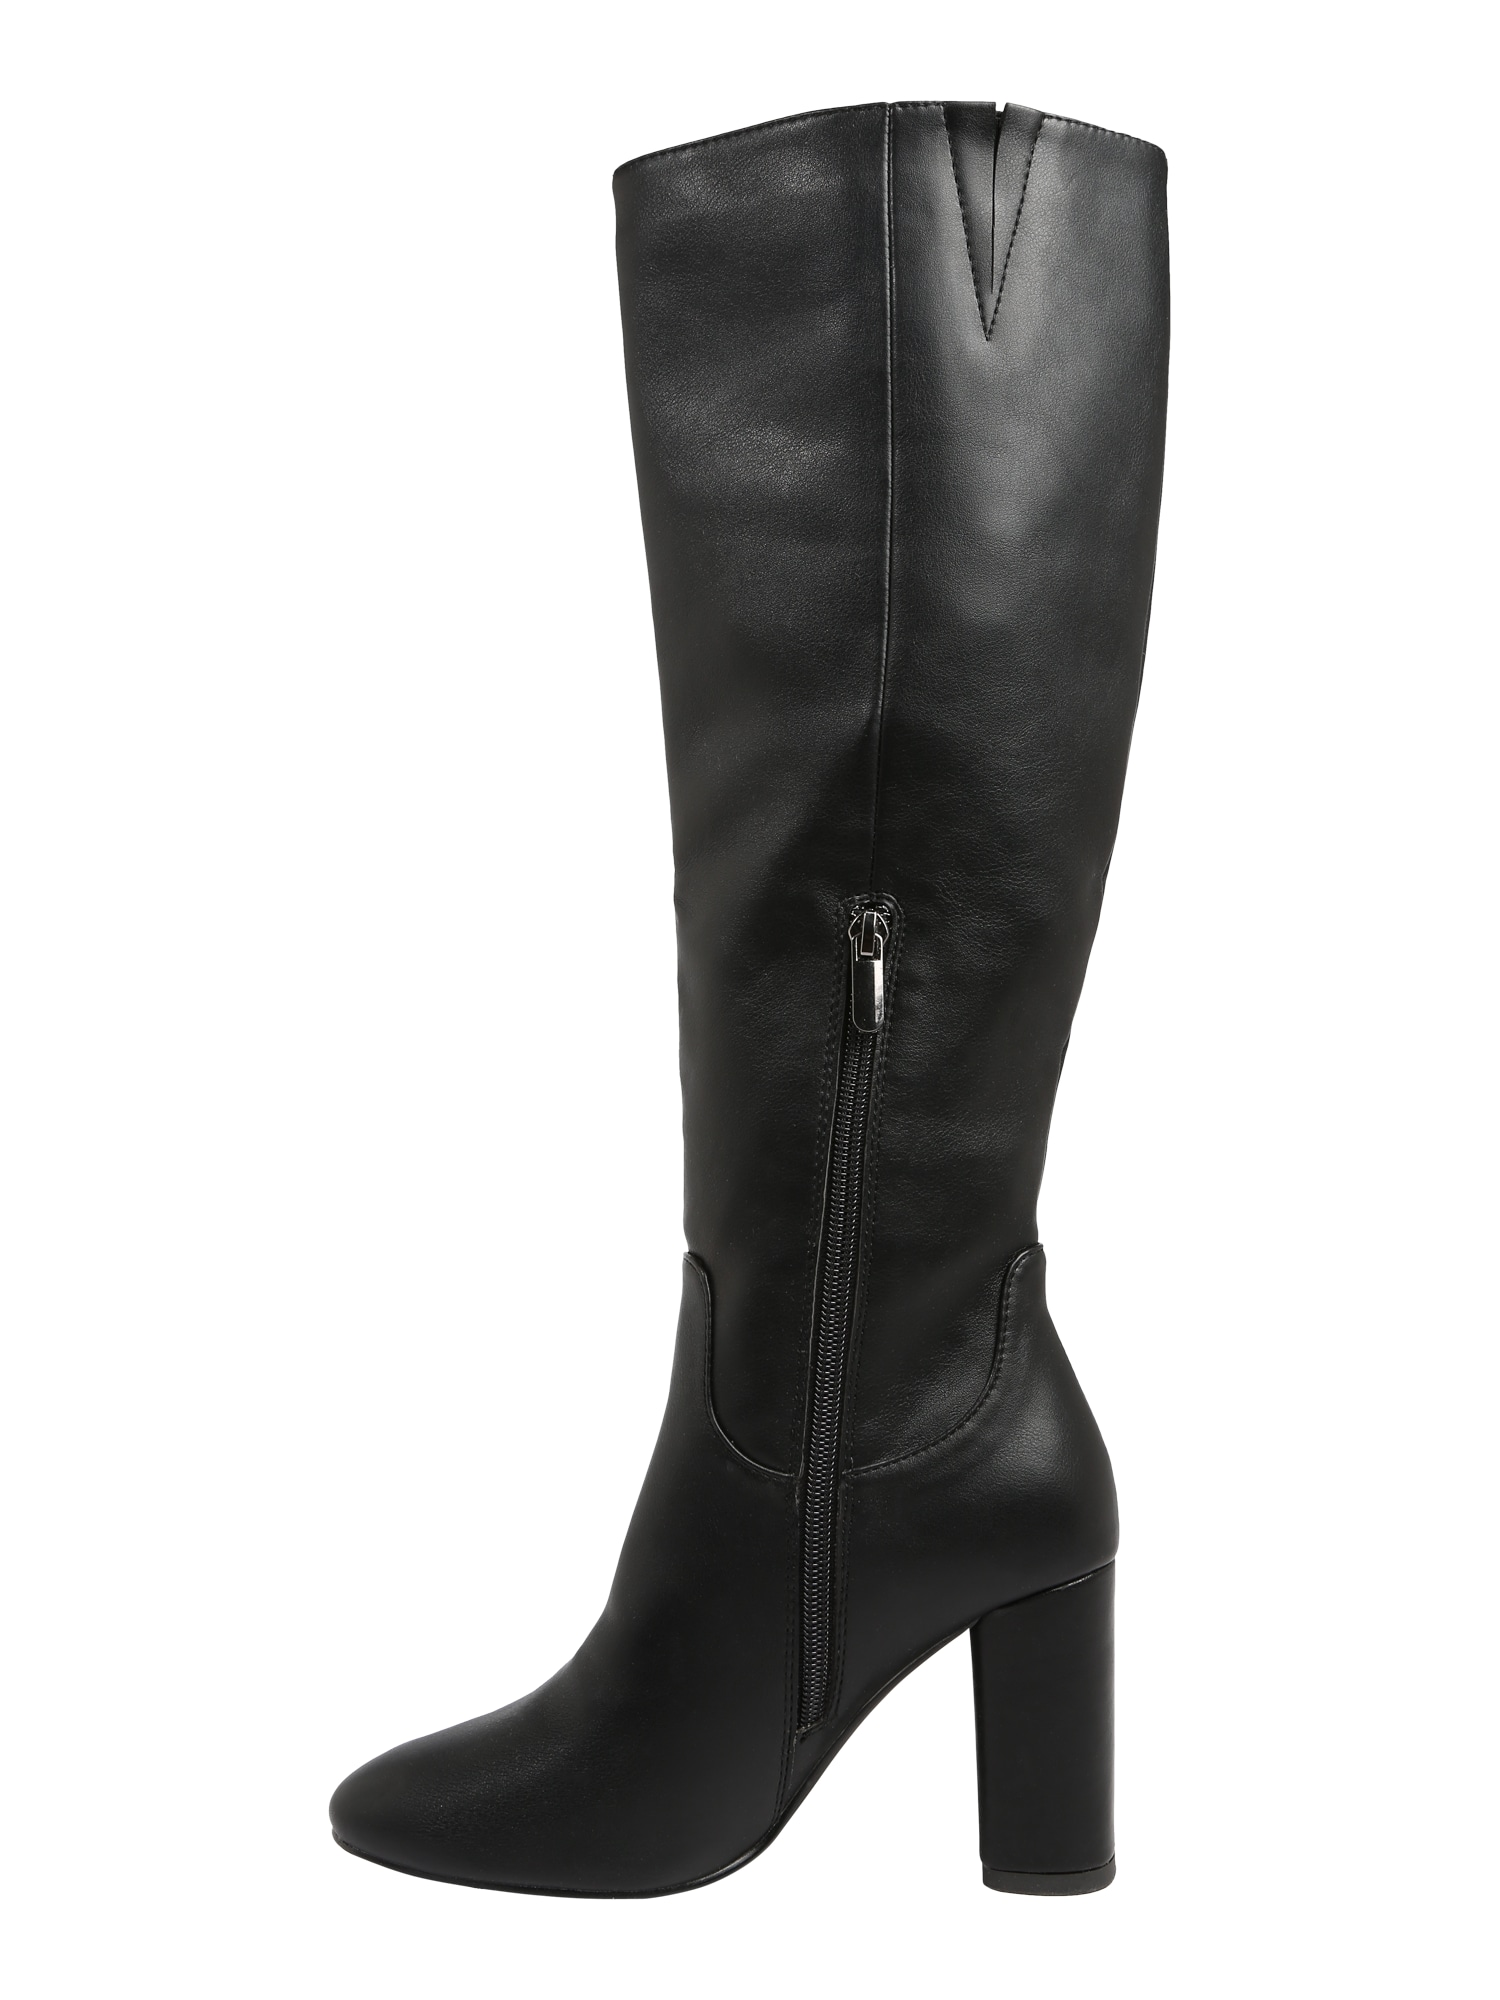 about you - Stiefel 'Verehna'